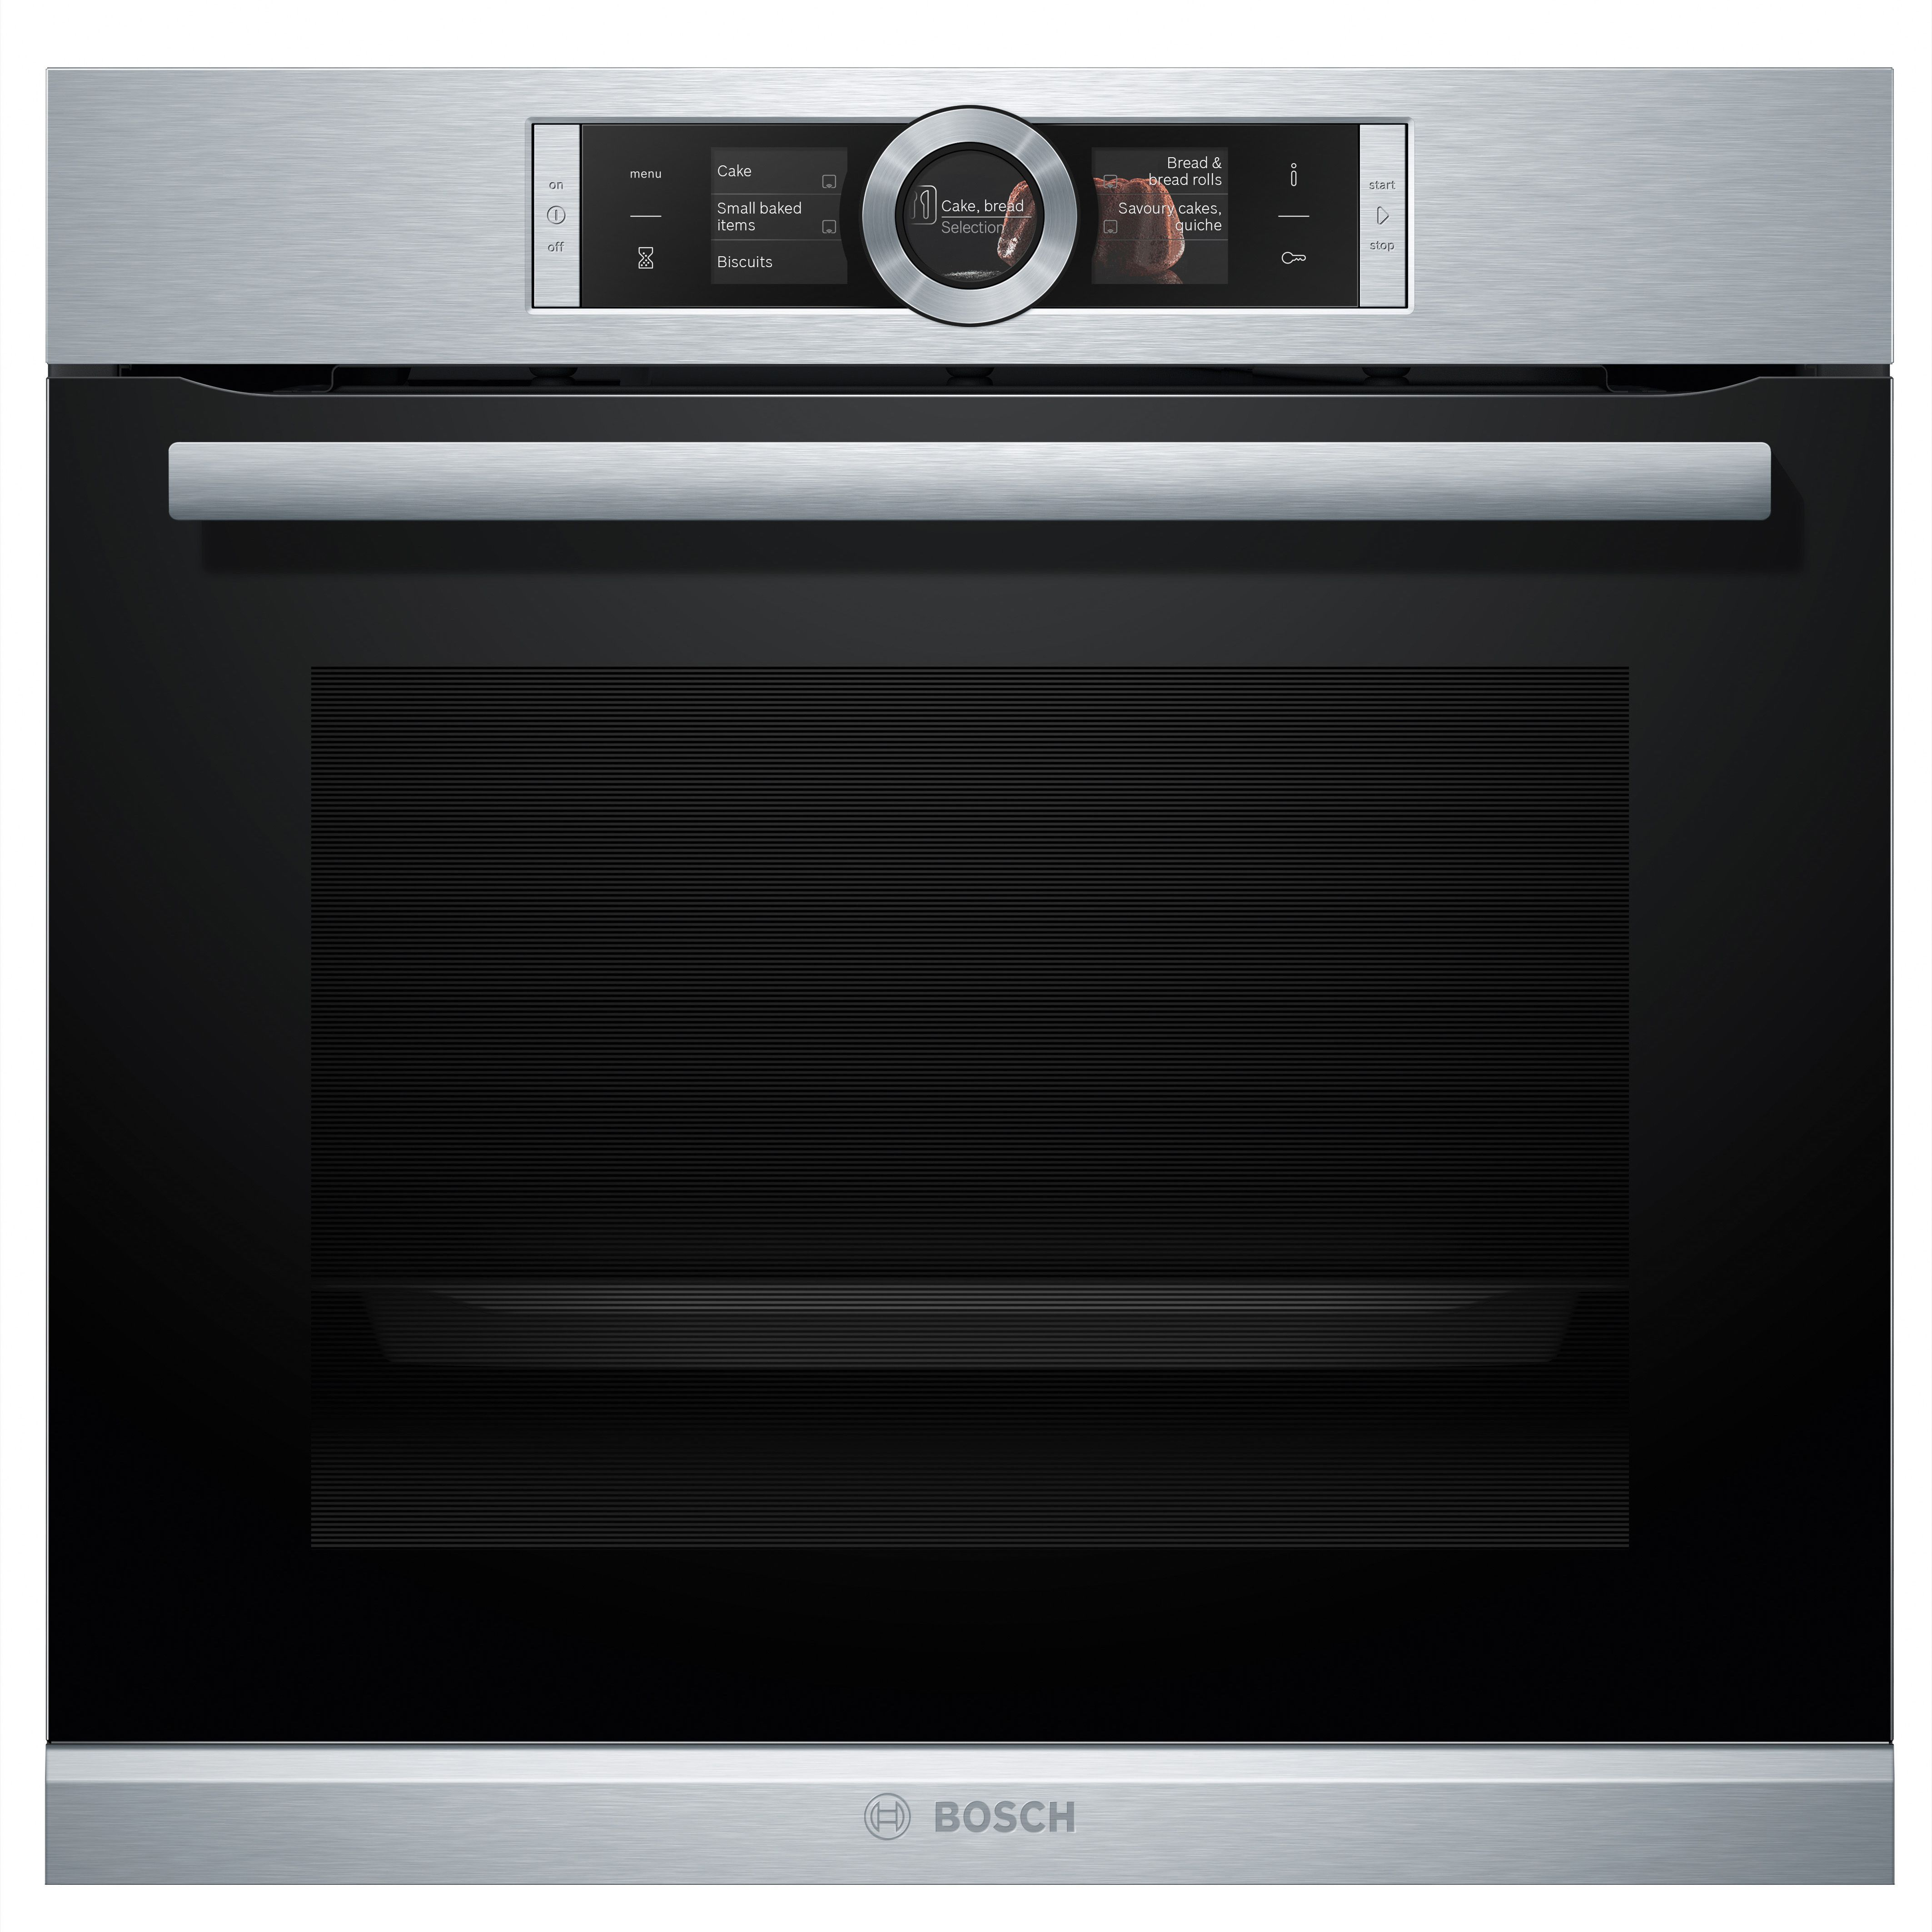 Bosch Hbg6764s1b Brushed Steel Electric Multifunction Pyrolytic Single Oven